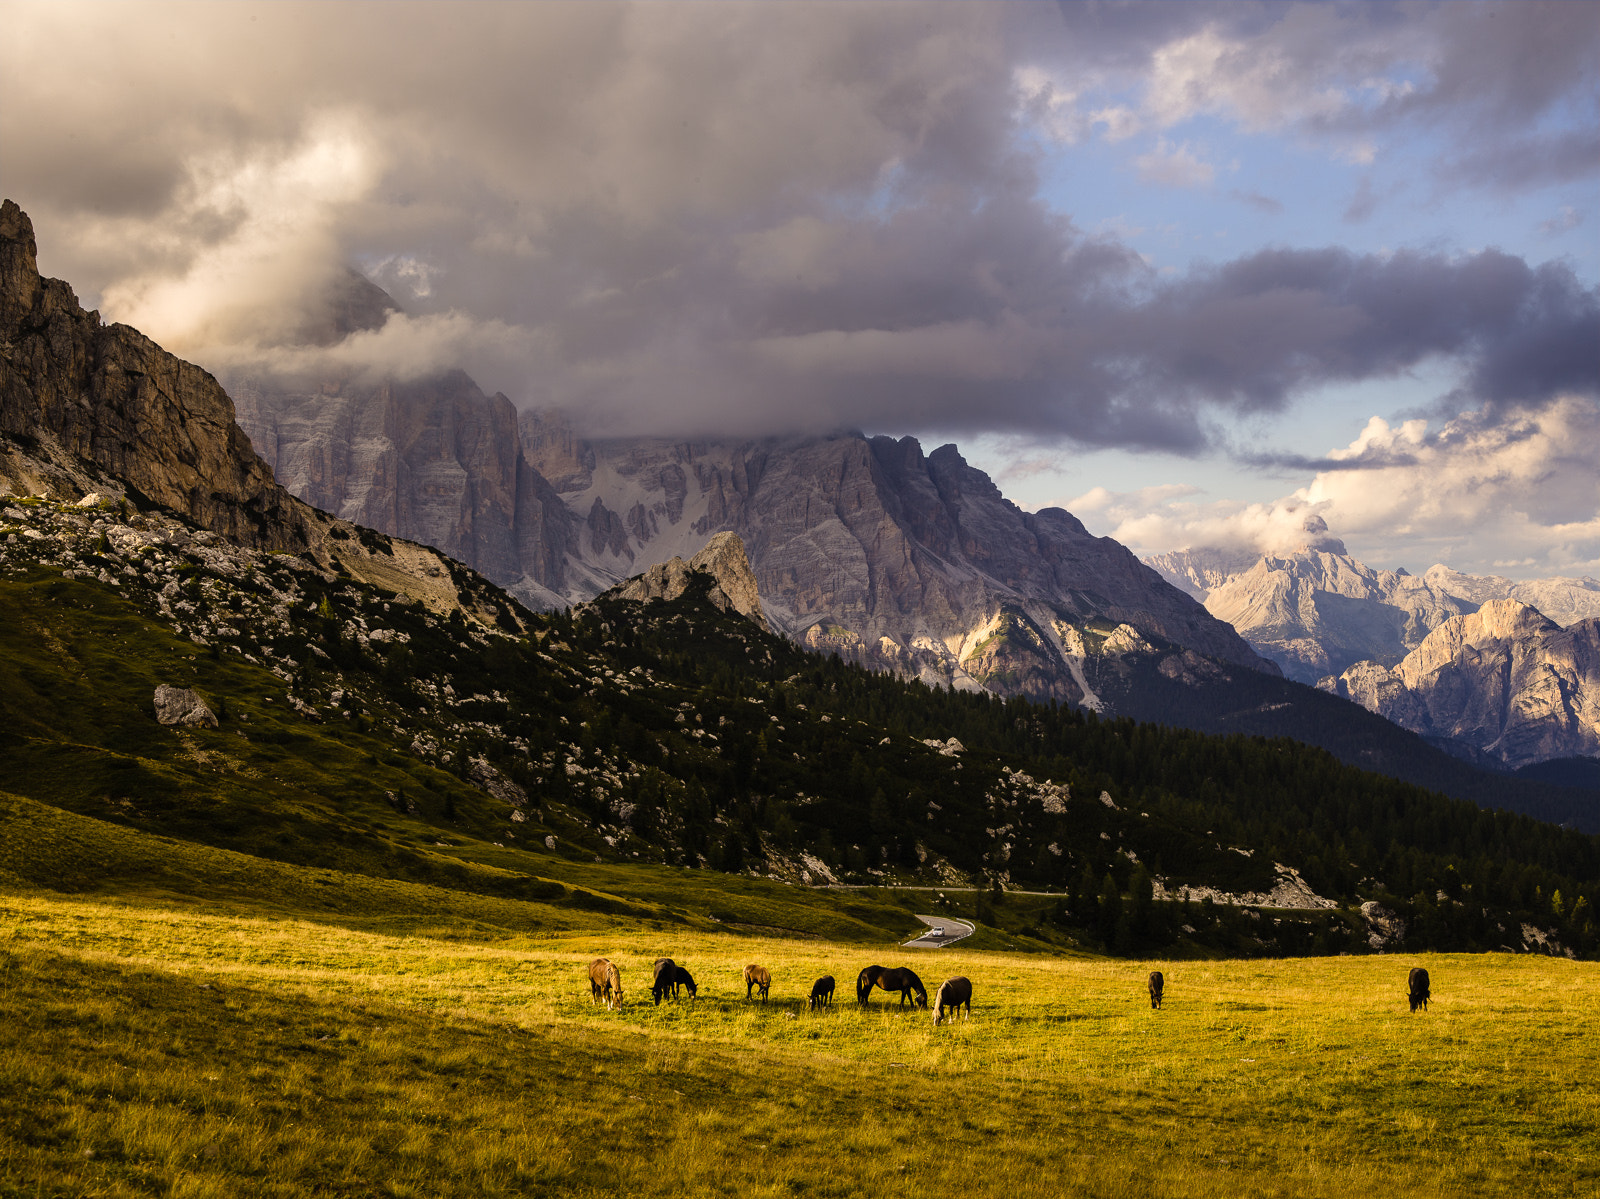 Photograph Landscape at Passo Giau by Hans Kruse on 500px